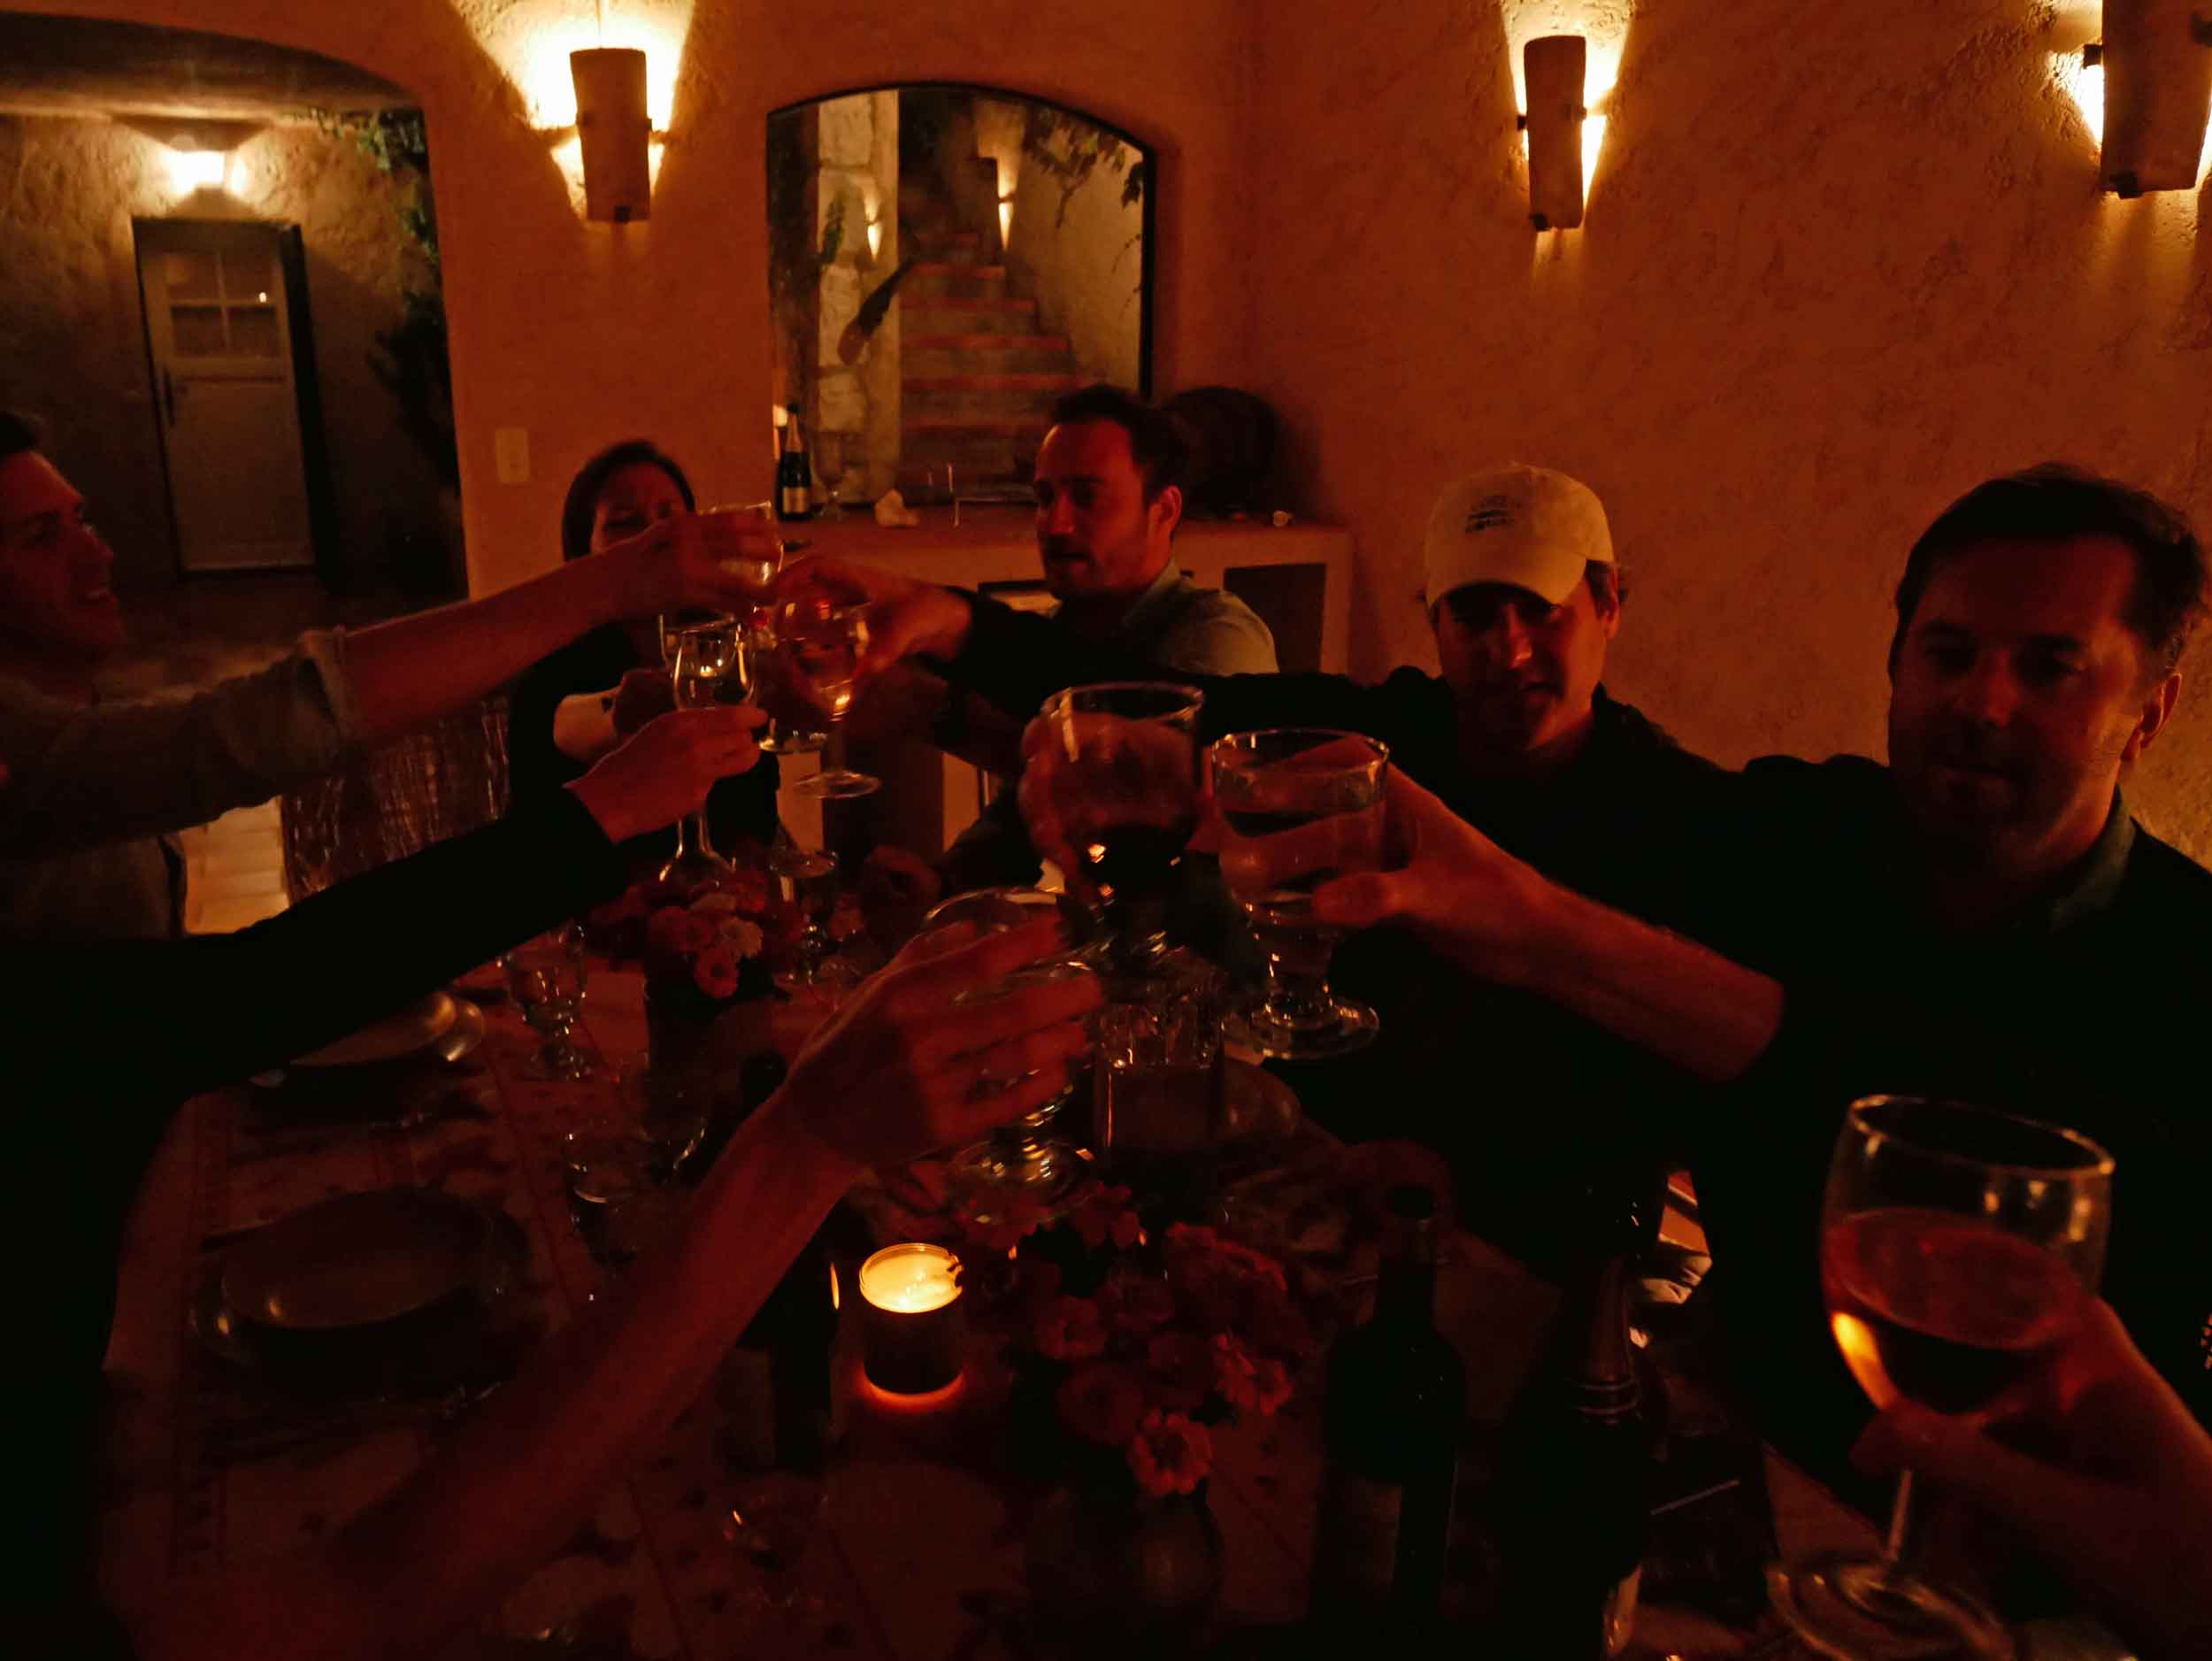 Santé!Toasting a gorgeous meal made together with friends.